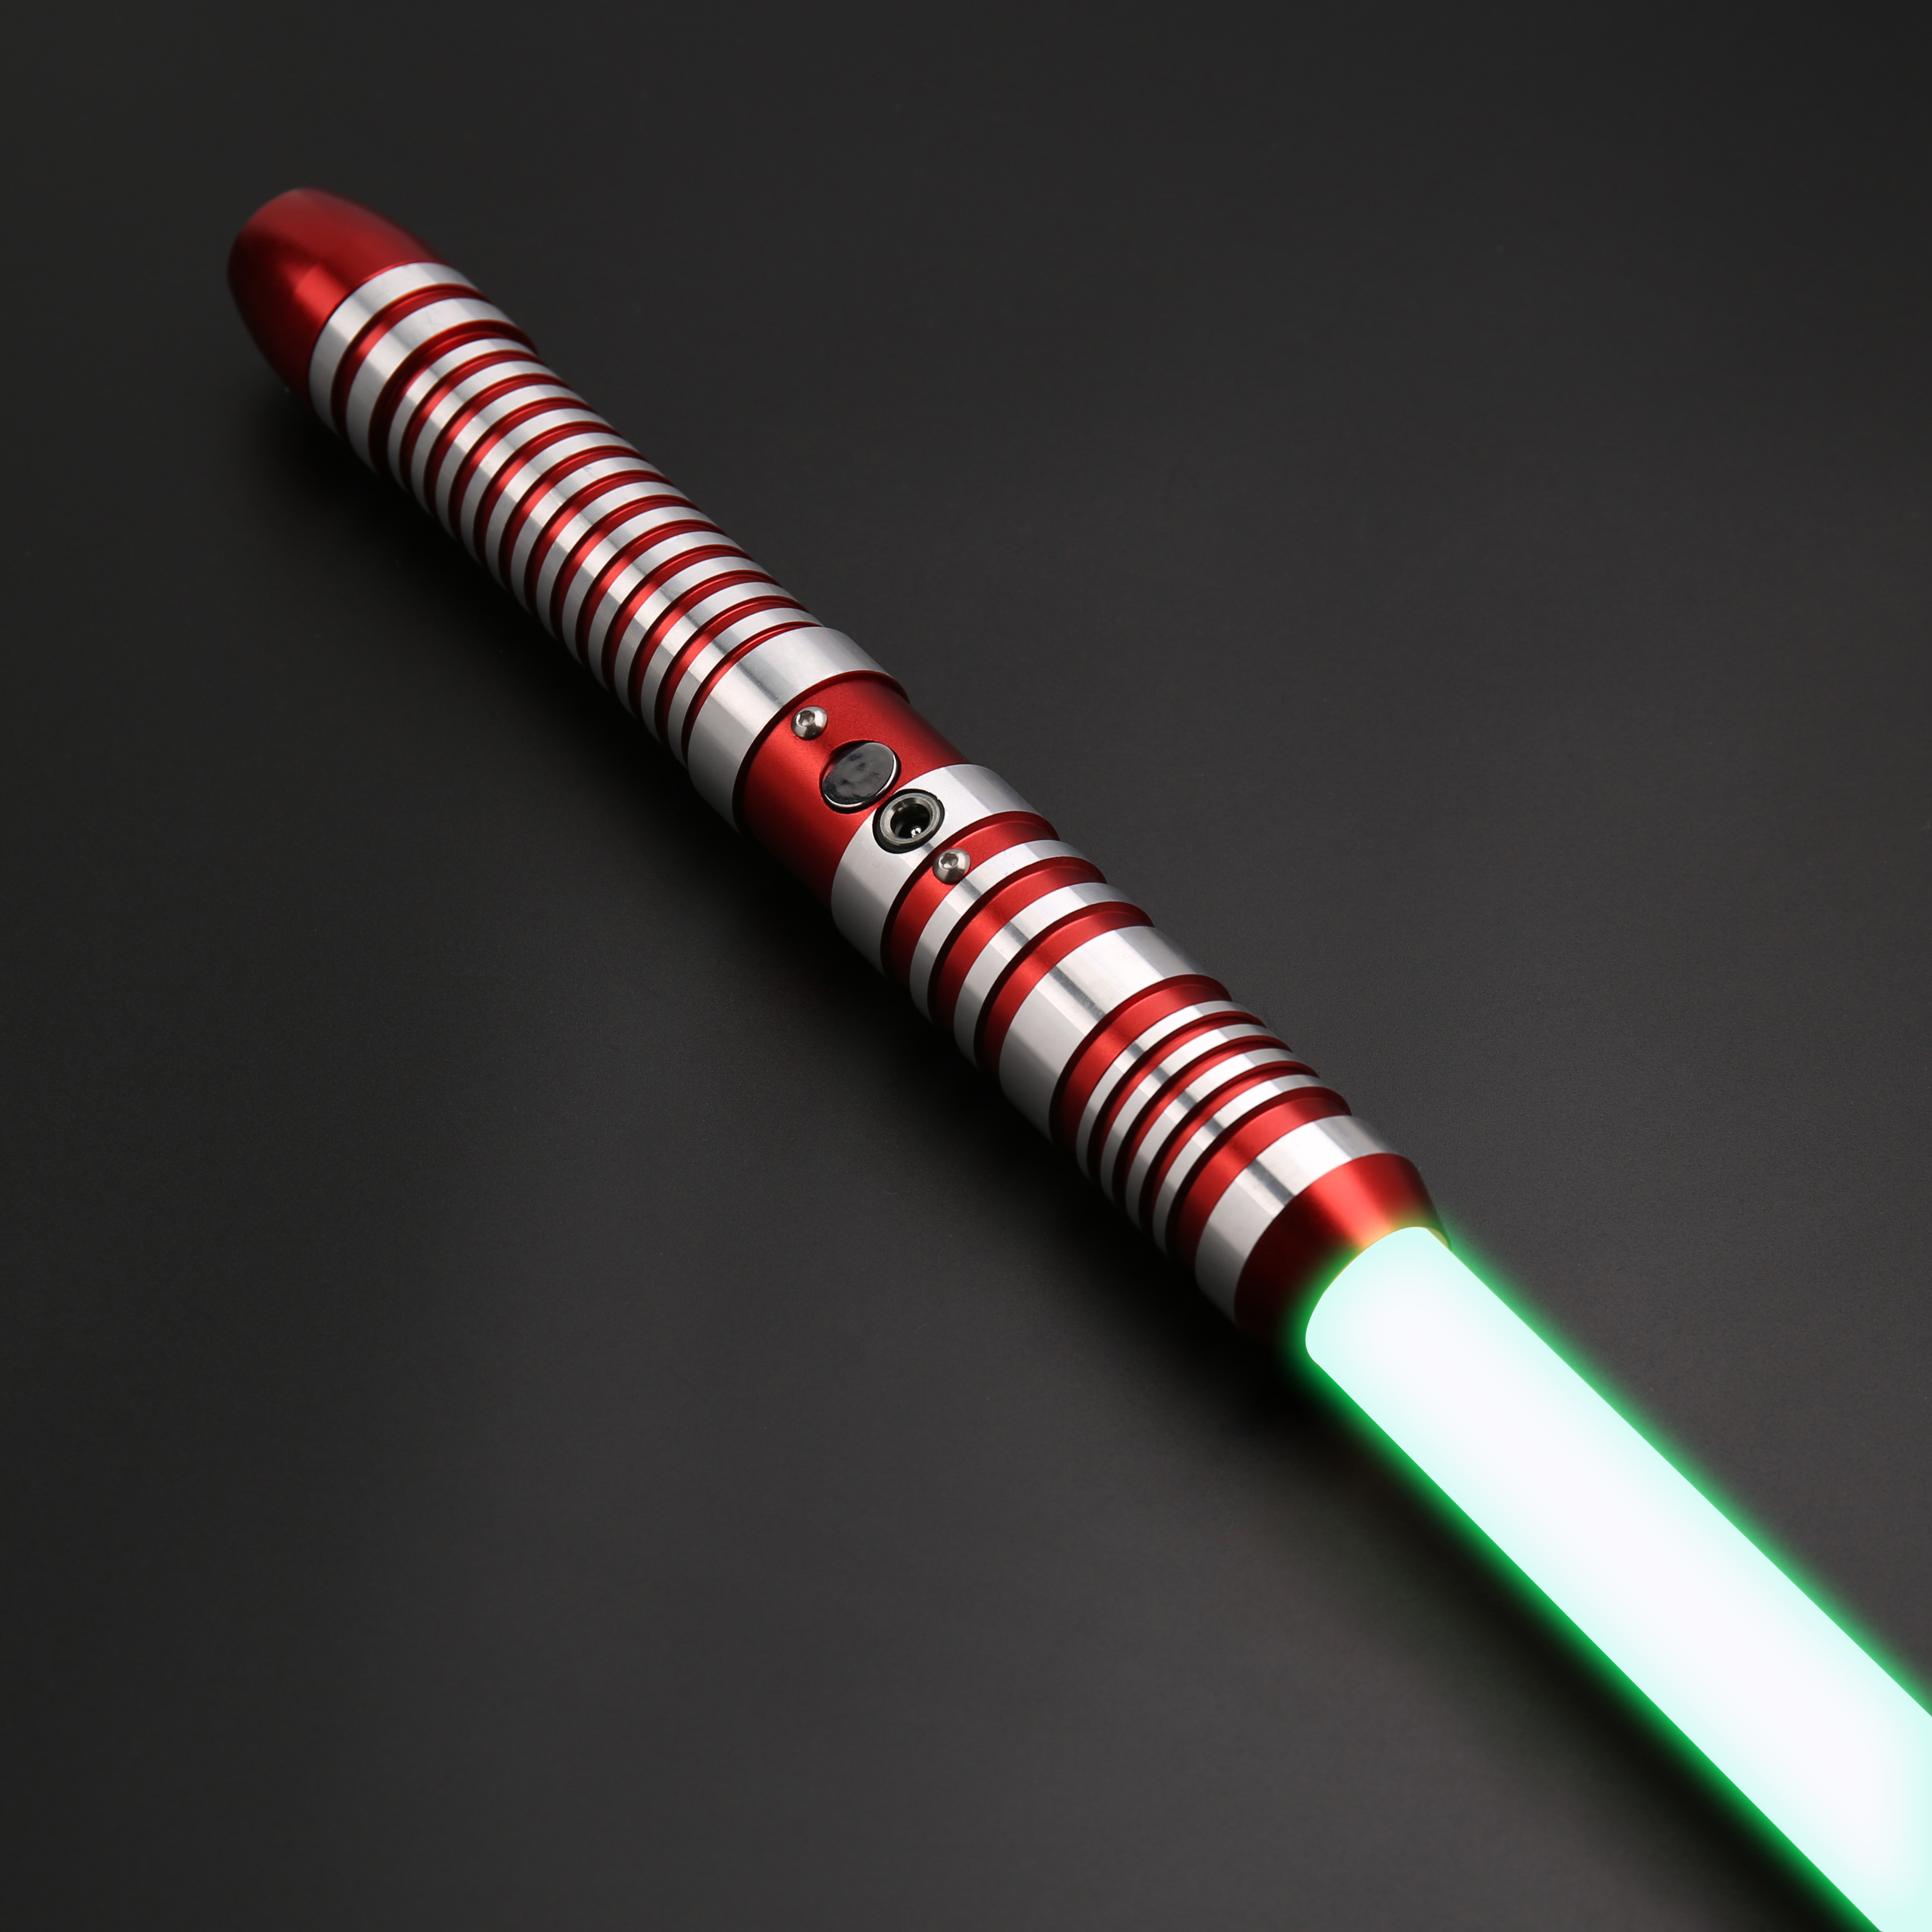 SaberFeast Blaster Lightsaber Heavy Dueling RGB 6 Colors LED with 7/8 inch Removable Blade Metal Handle FOC Cosplay Kids Toy-04